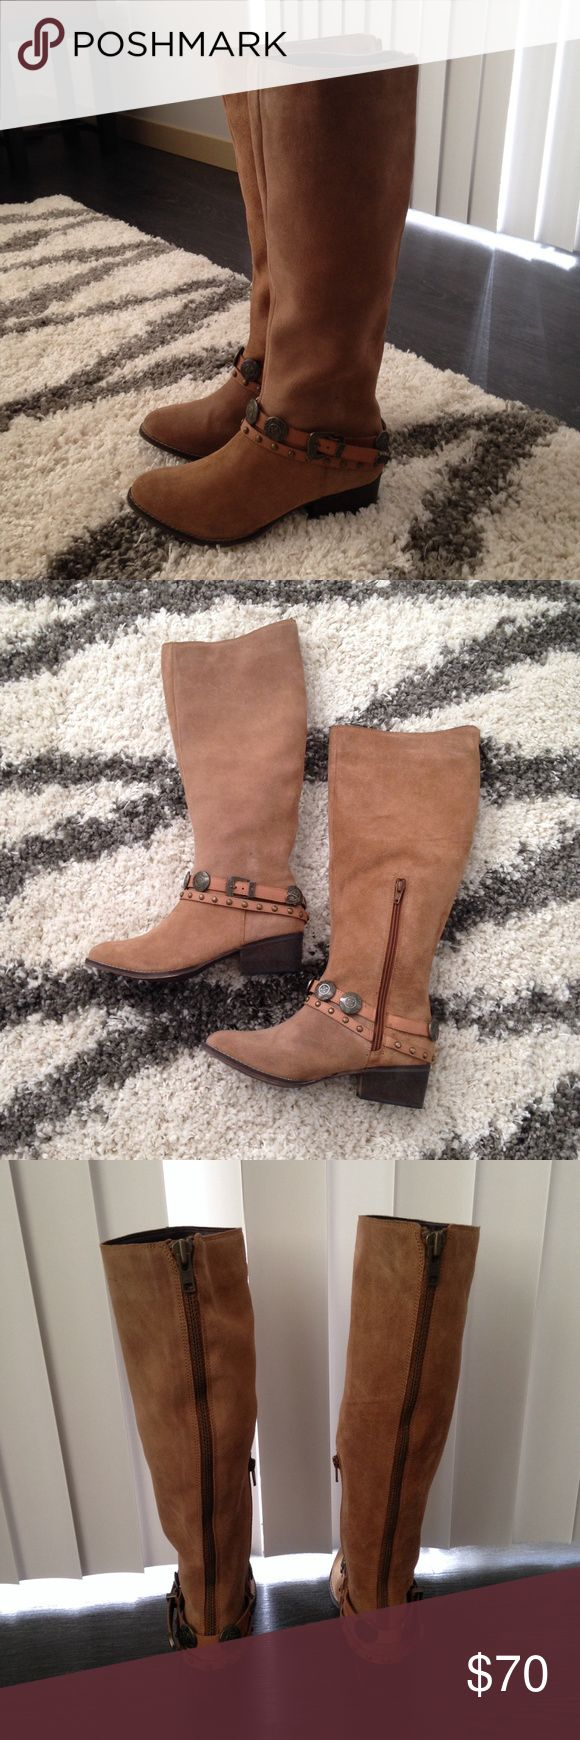 NWT Brown Heel Knee High Western Boots Size 8 So cute! Boutique Shoes Heeled Boots